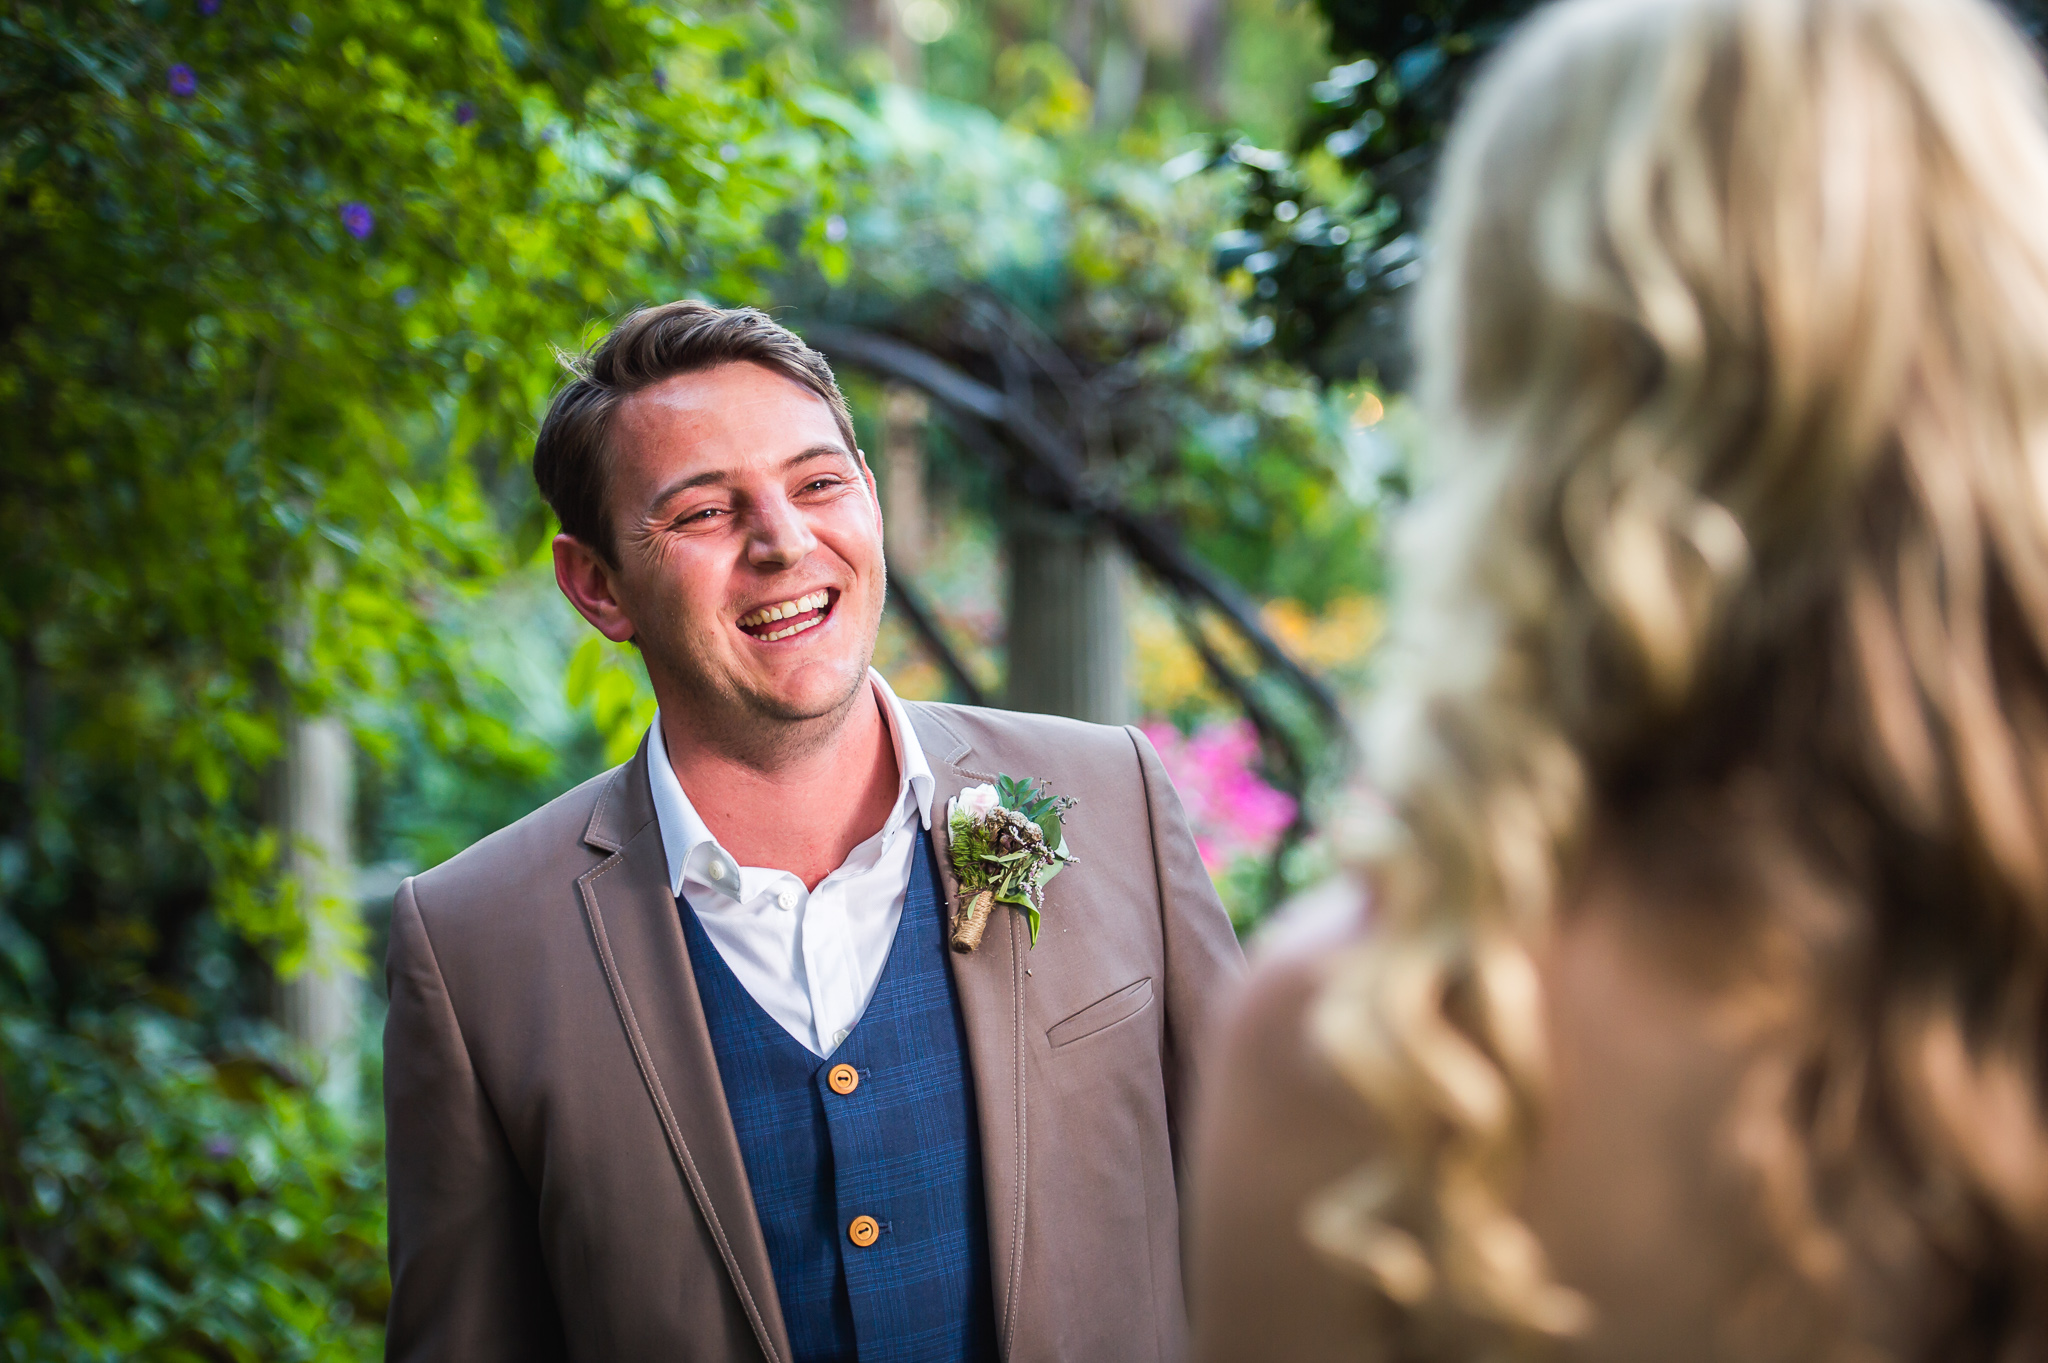 George and Charlene - Shepstone Gardens - Sneak Peak (40 of 49).jpg